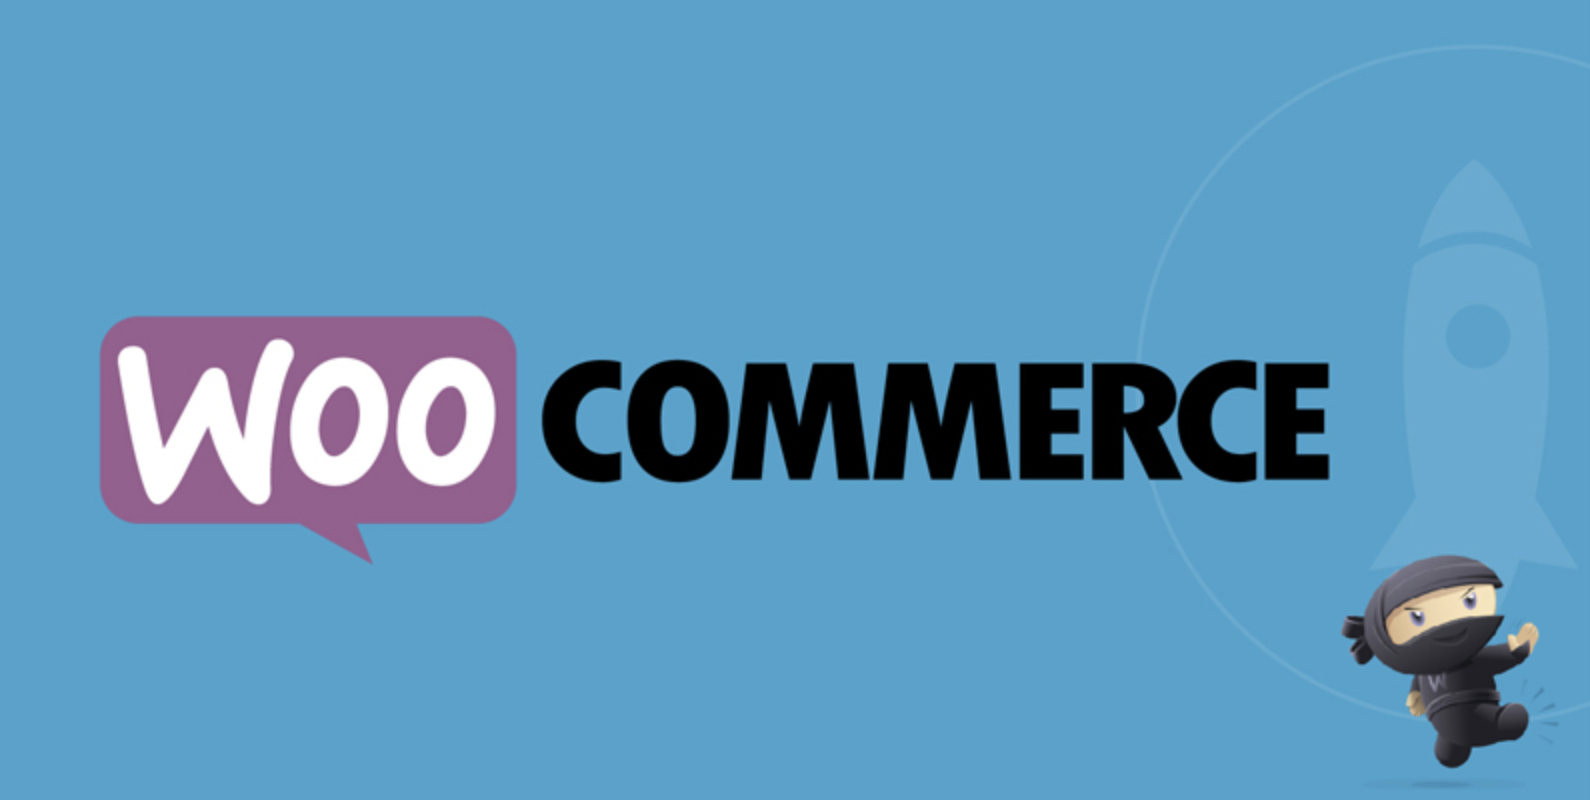 Elevate now supports WooCommerce